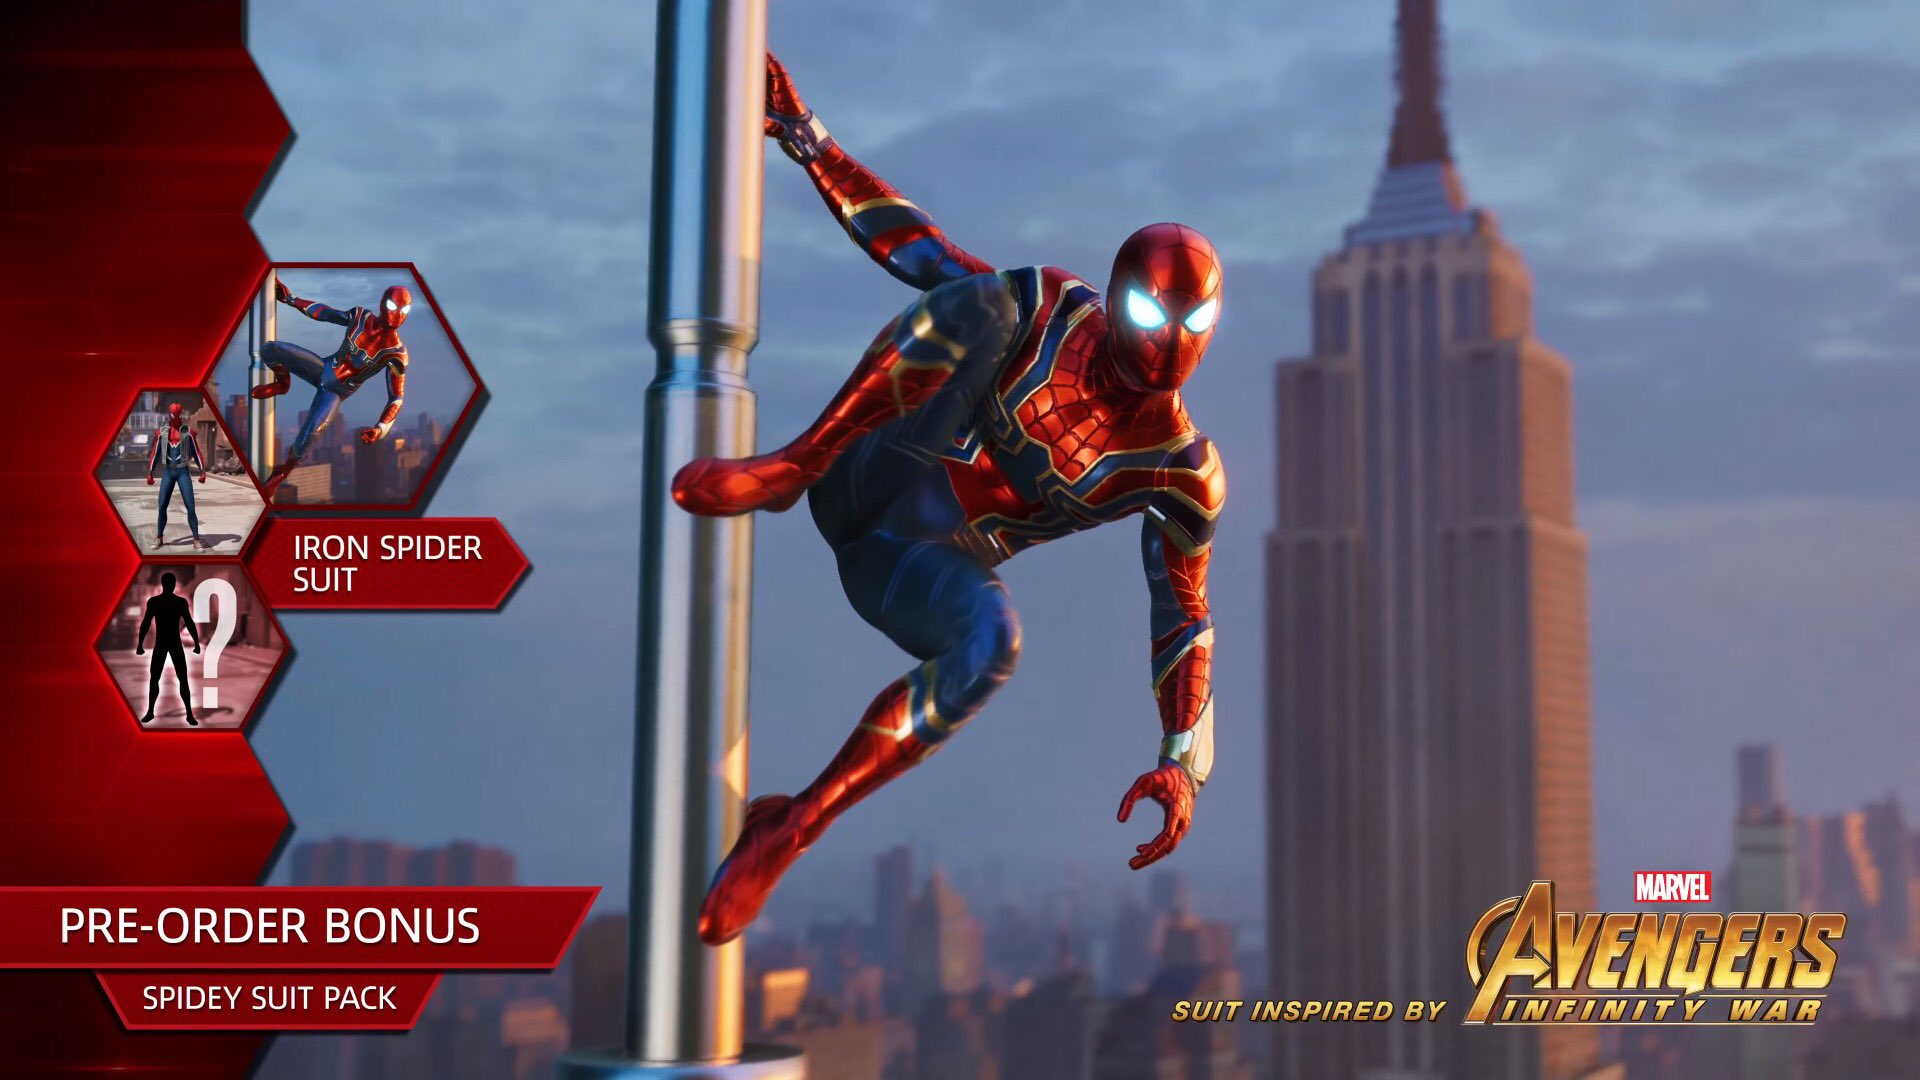 Iron Spider Comes to Marvel's Spider-Man on PS4